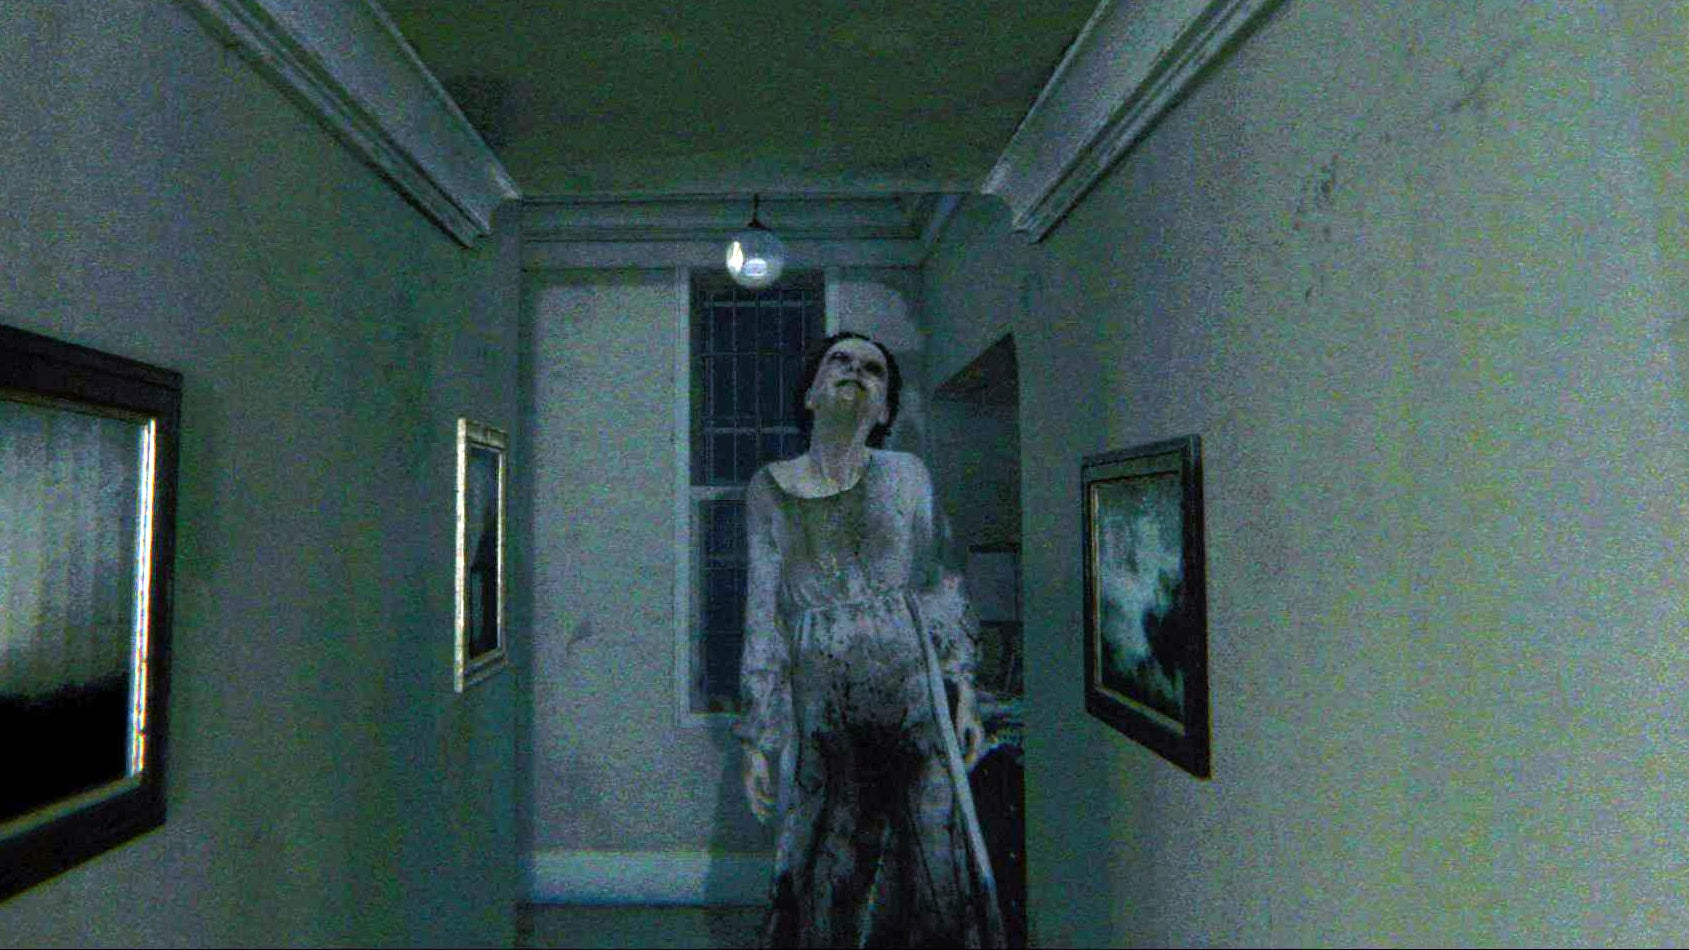 The Scariest Thing In P.T. Was Following You All Along